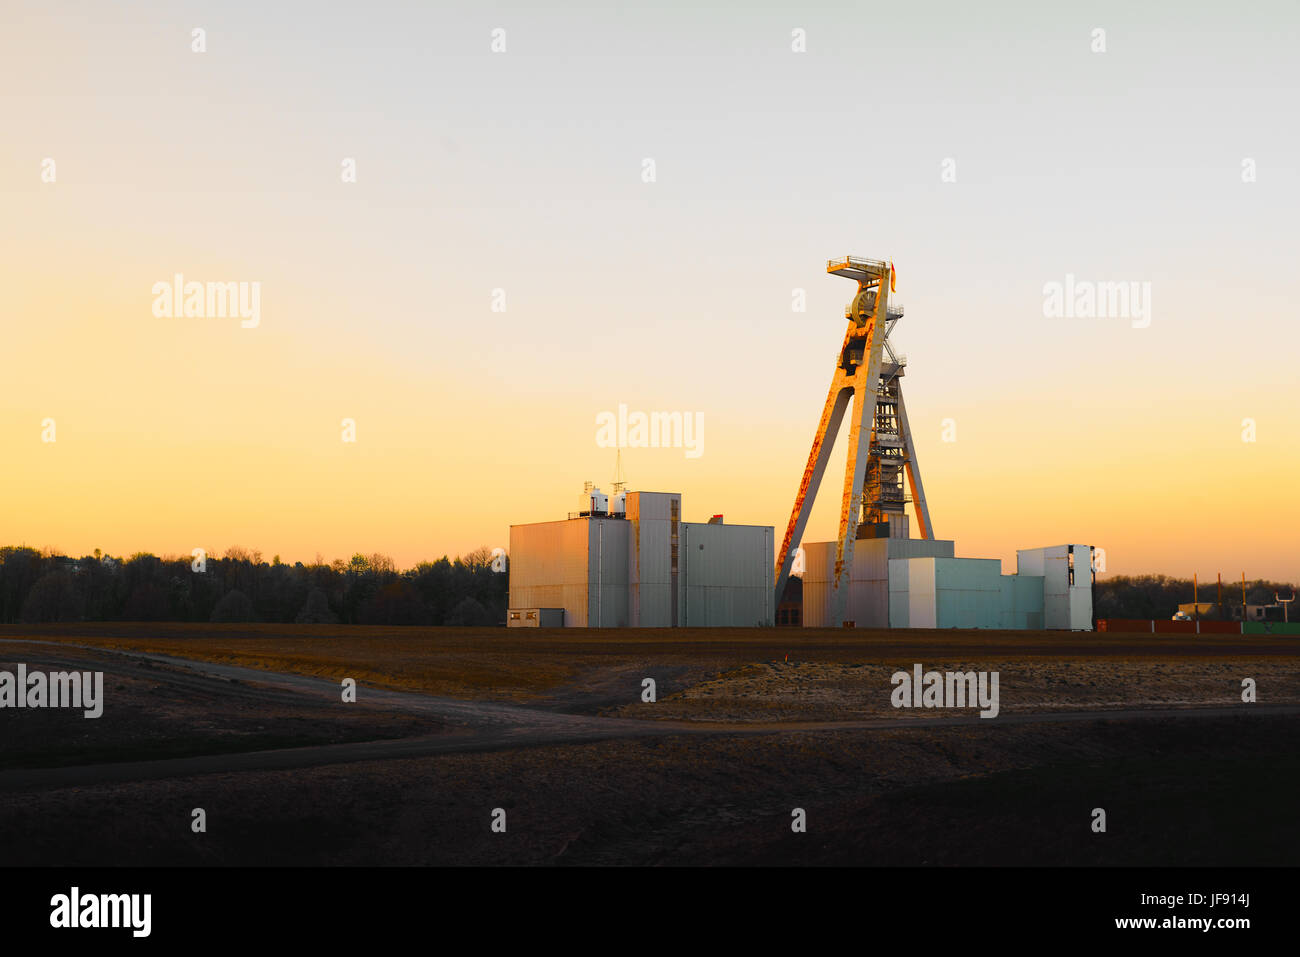 Old coal mining complex in Germany during sunset - Stock Image